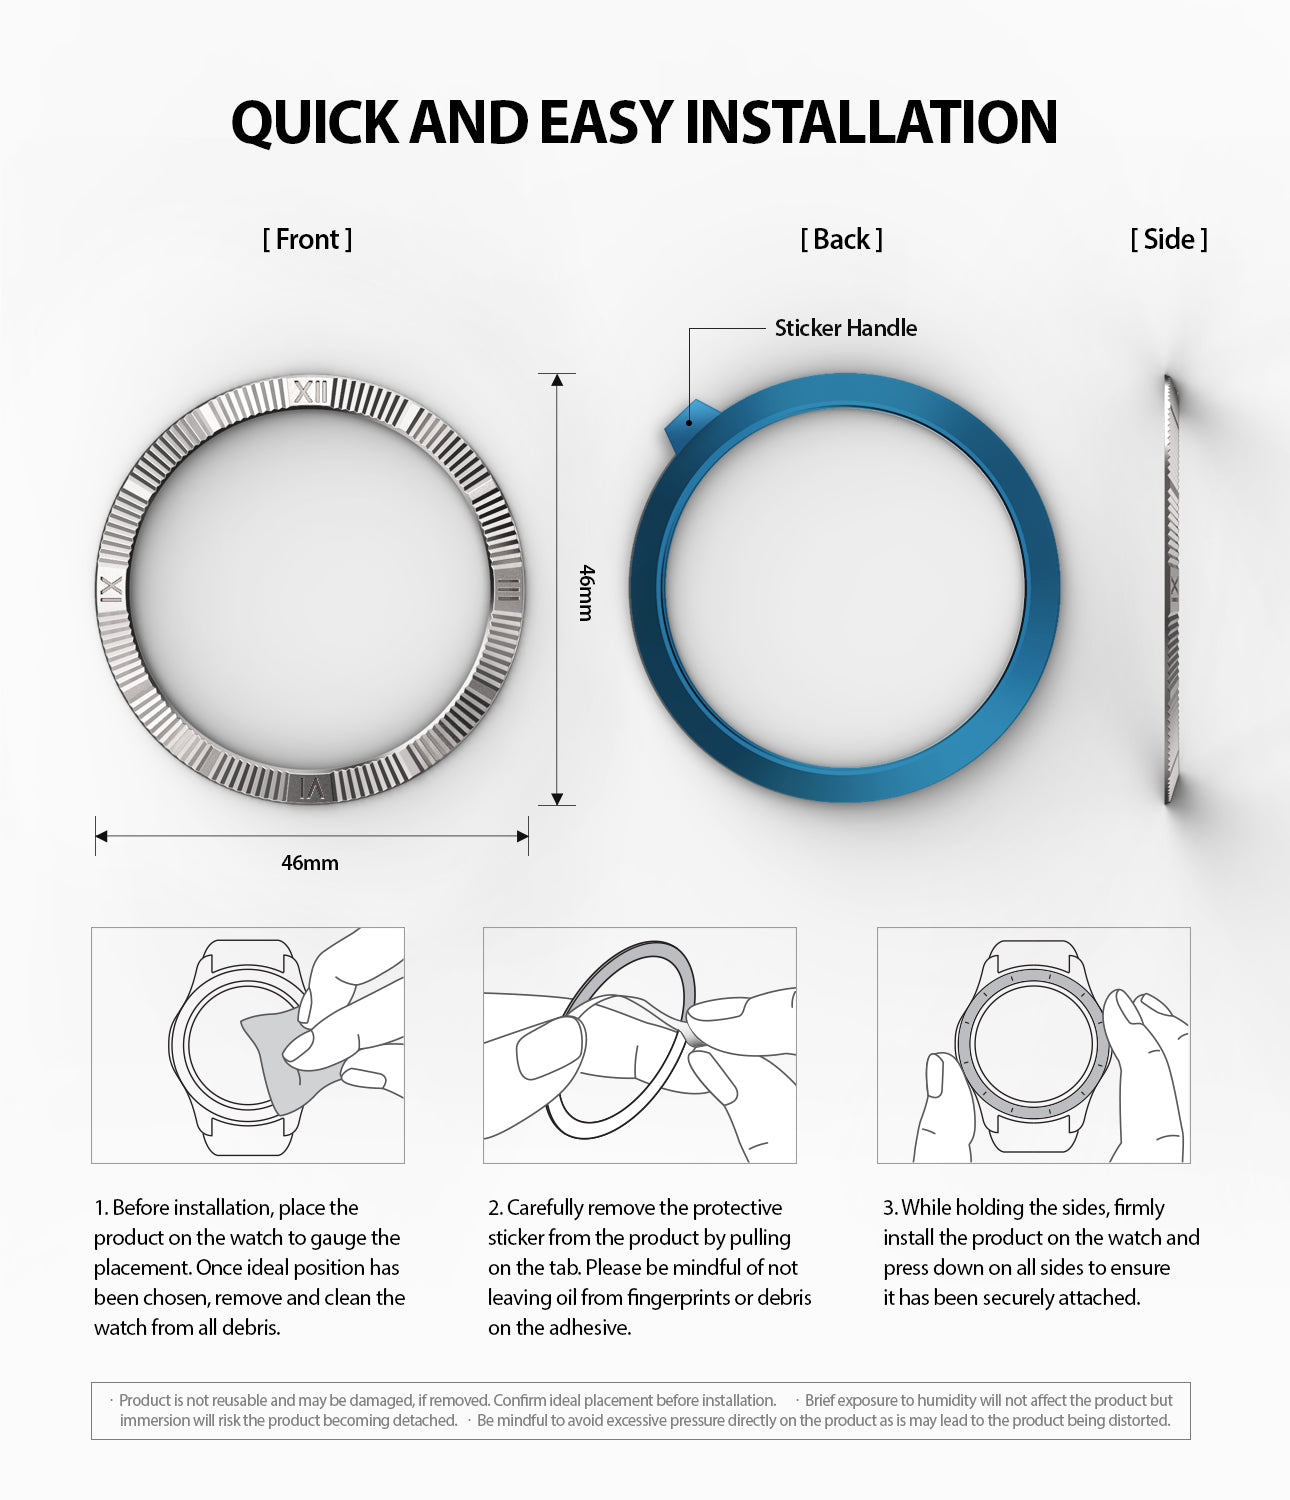 quick and easy installation guide for galaxy watch 46mm